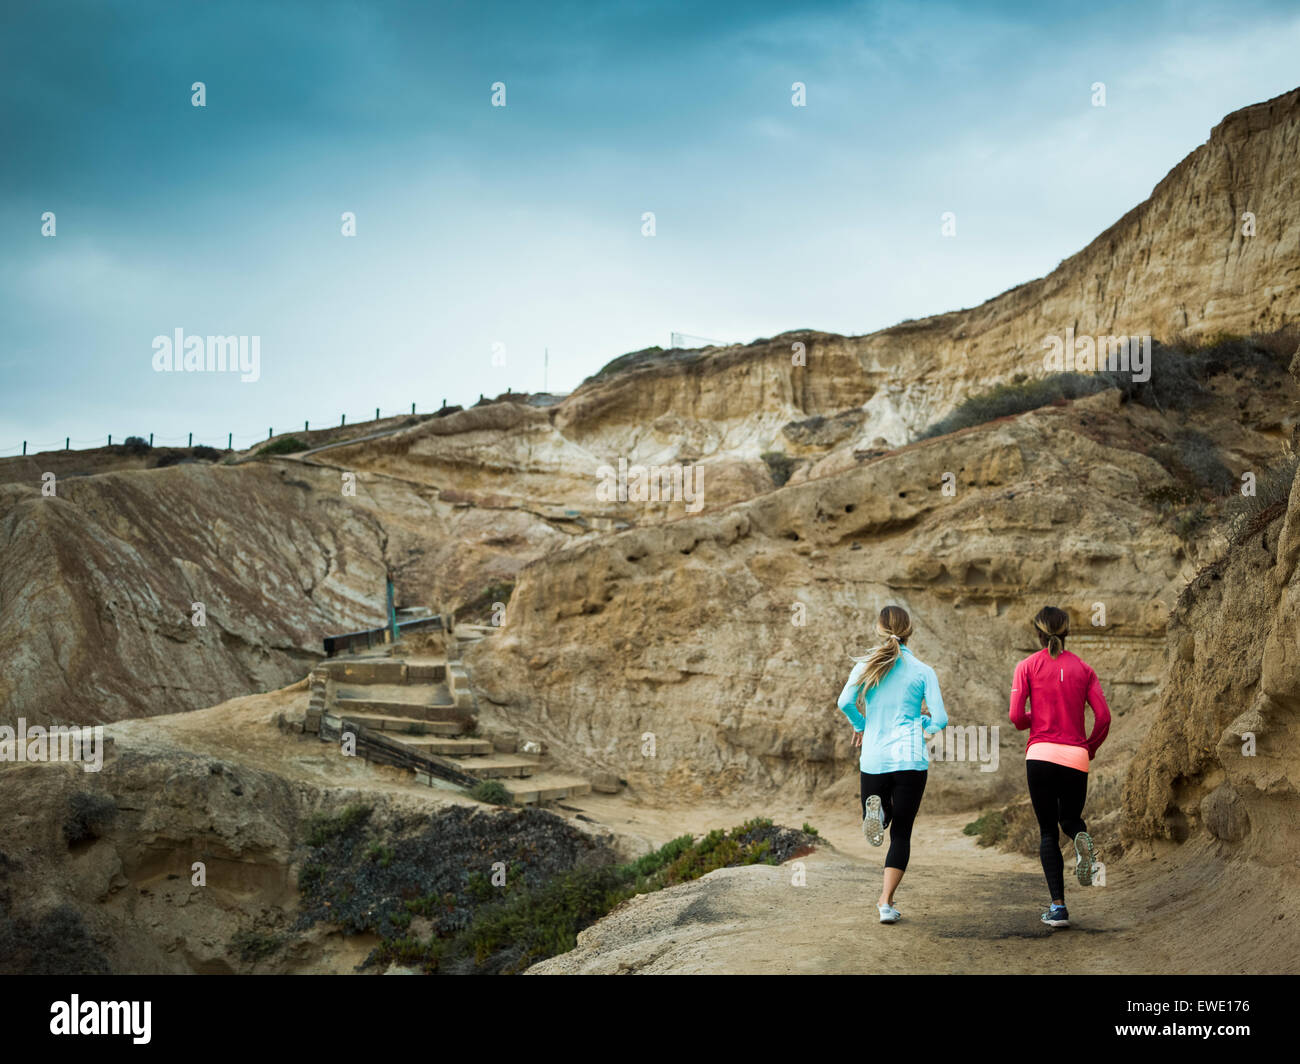 Two women jogging along a quarry trail - Stock Image